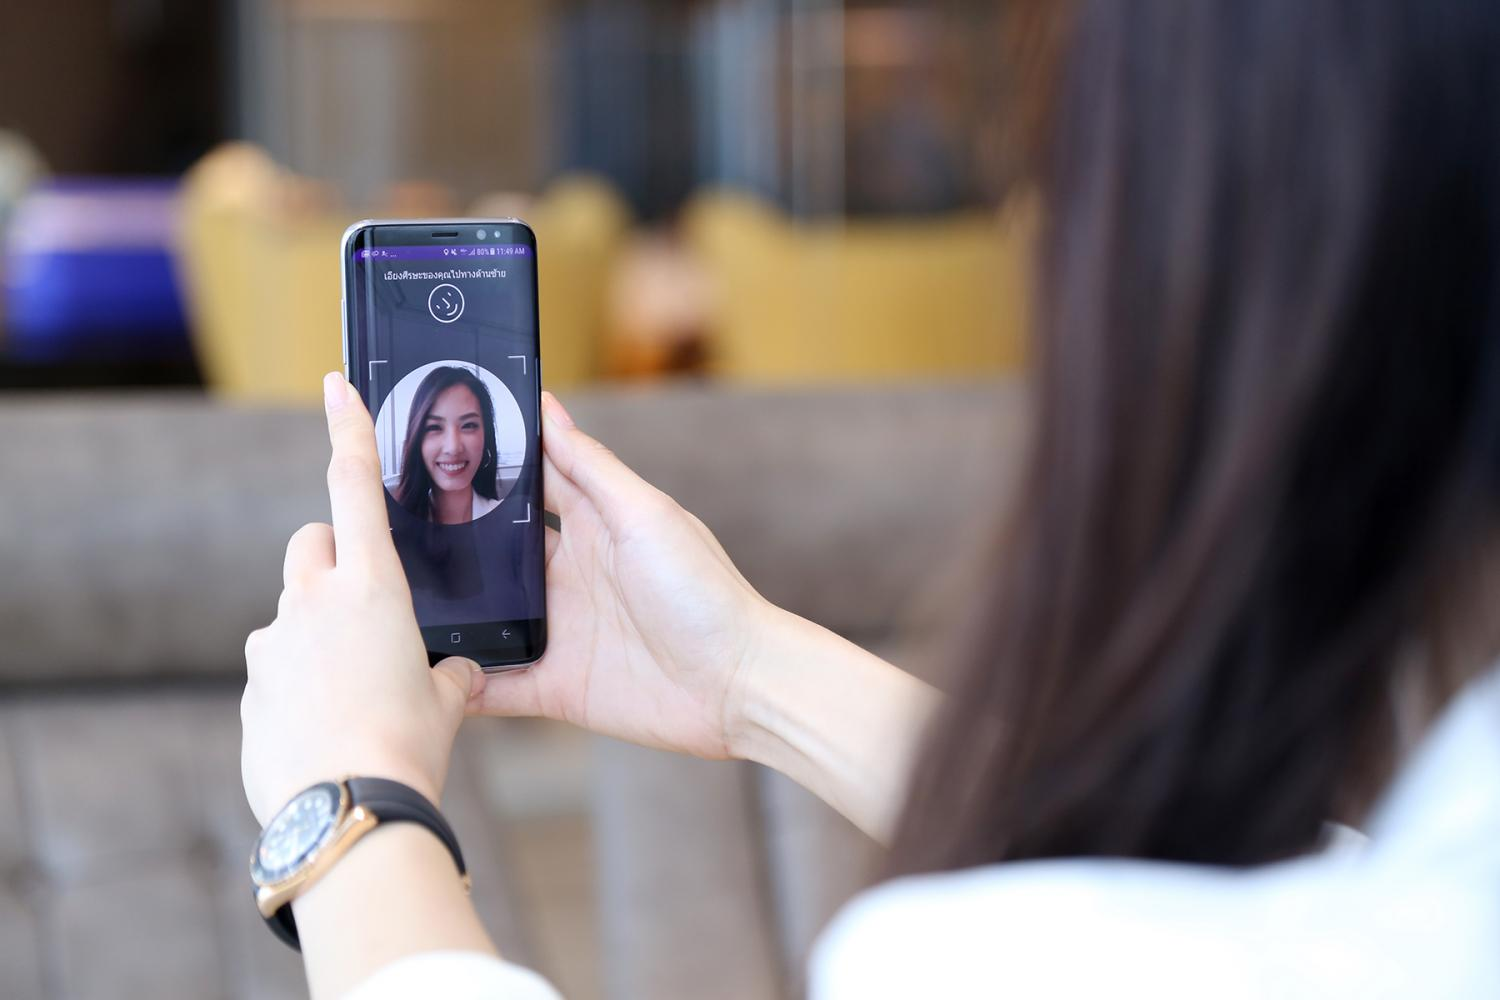 A mobile screen displays a bank's digital know-your-customer feature which allows new bank accounts via facial recognition. Most Thais are open to providing their bank with a biometric such as a facial scan, fingerprint or voiceprint to secure their accounts.